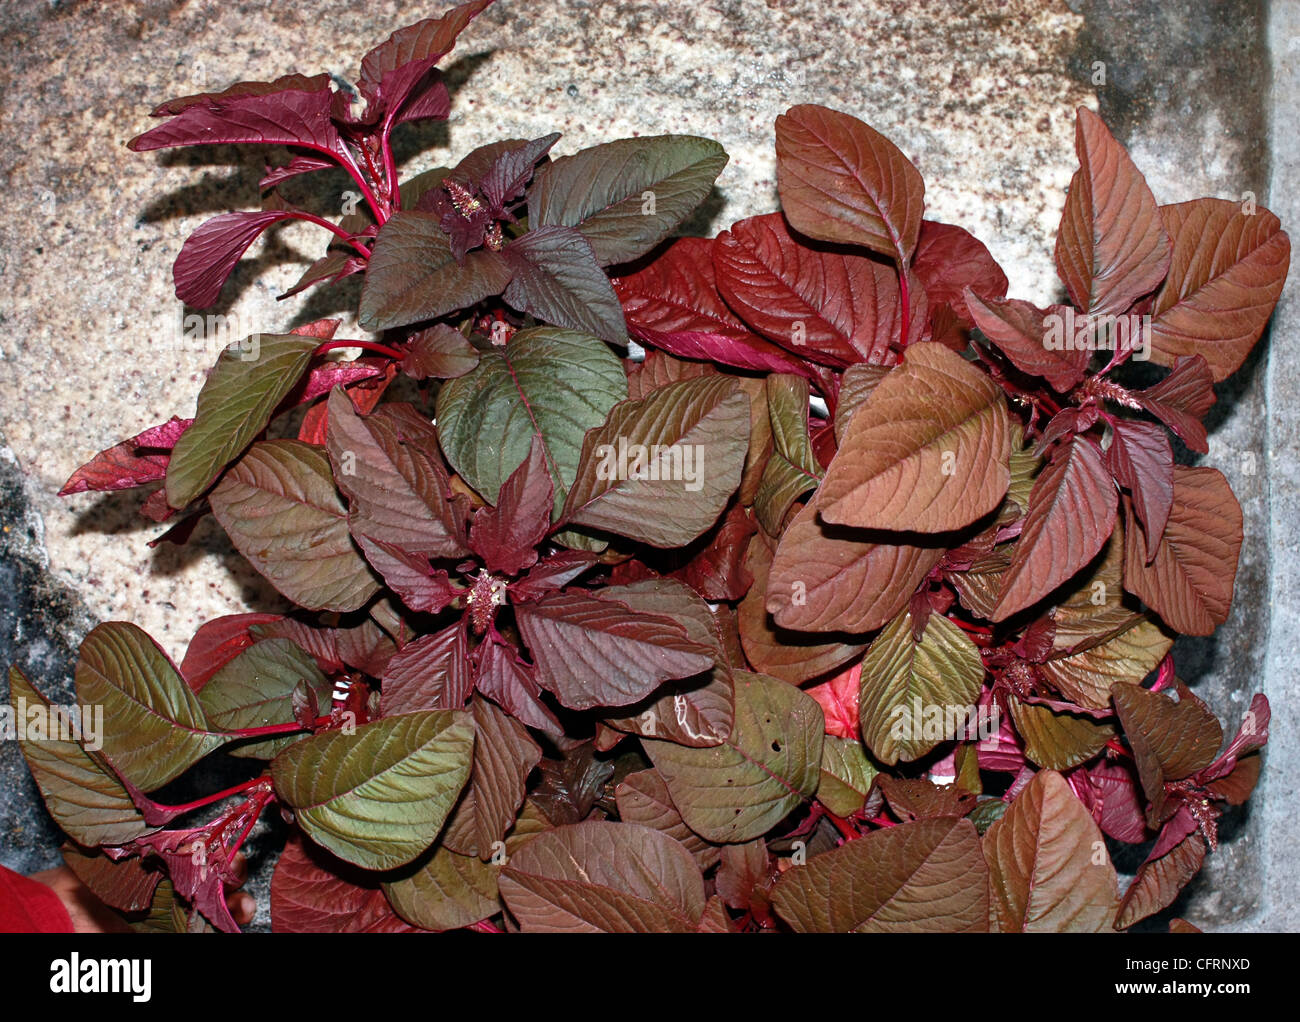 A vegetable plant  , Chinese spinach or red spinach ( Amaranthus dubius ) - Stock Image